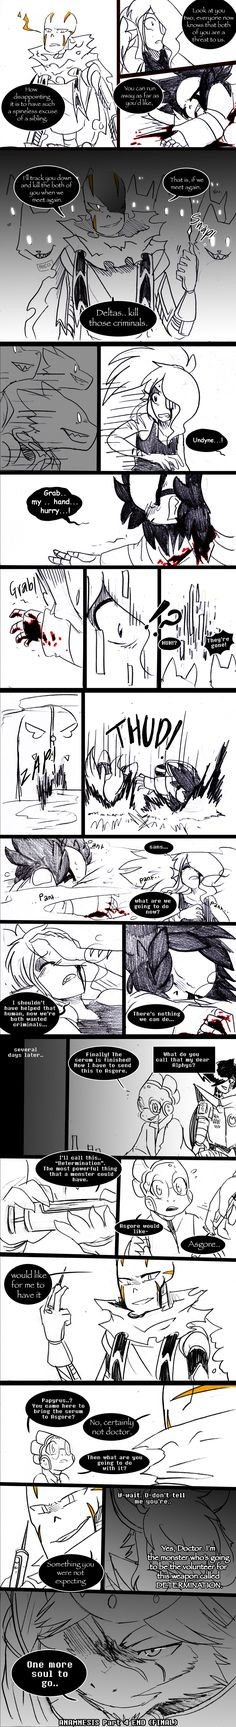 Anamnesis Part 4 - 55-60 (FINAL) by GolzyBlazey on DeviantArt